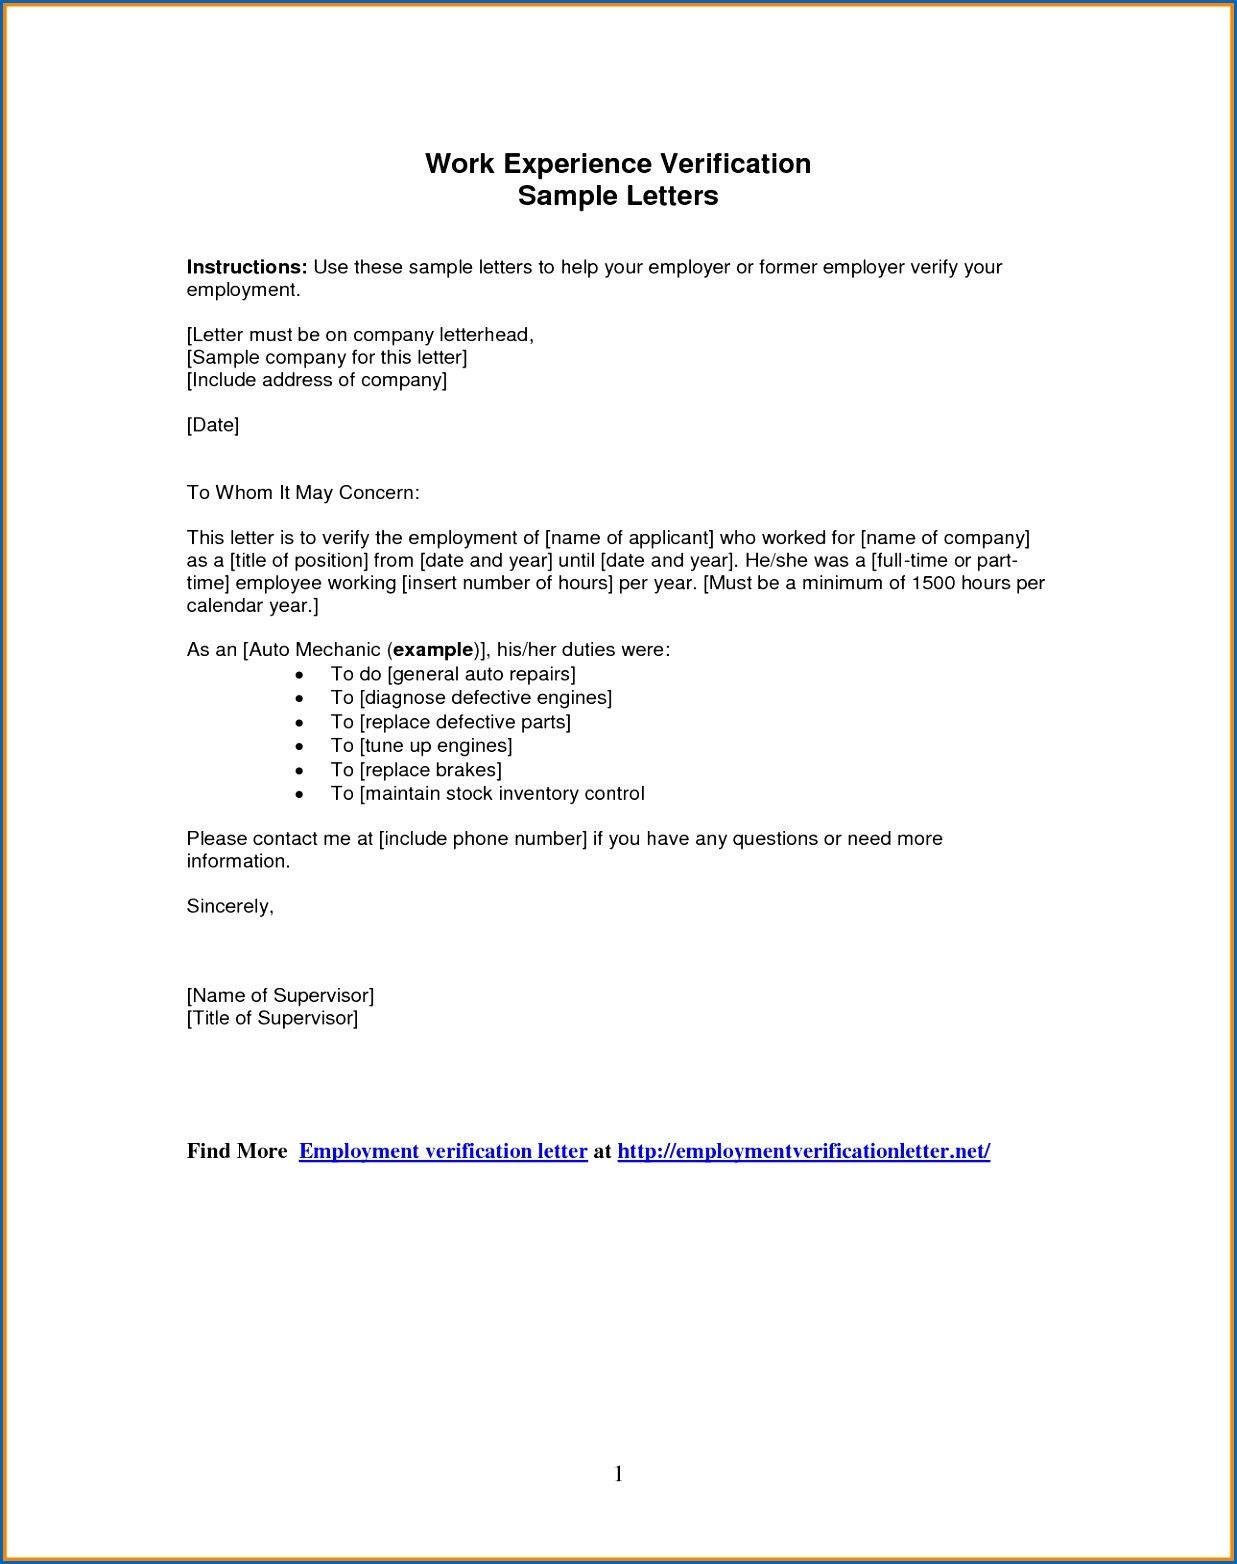 New Letter Format Inspiration Letter Format For Employment Verification New 9 Employers  News To .